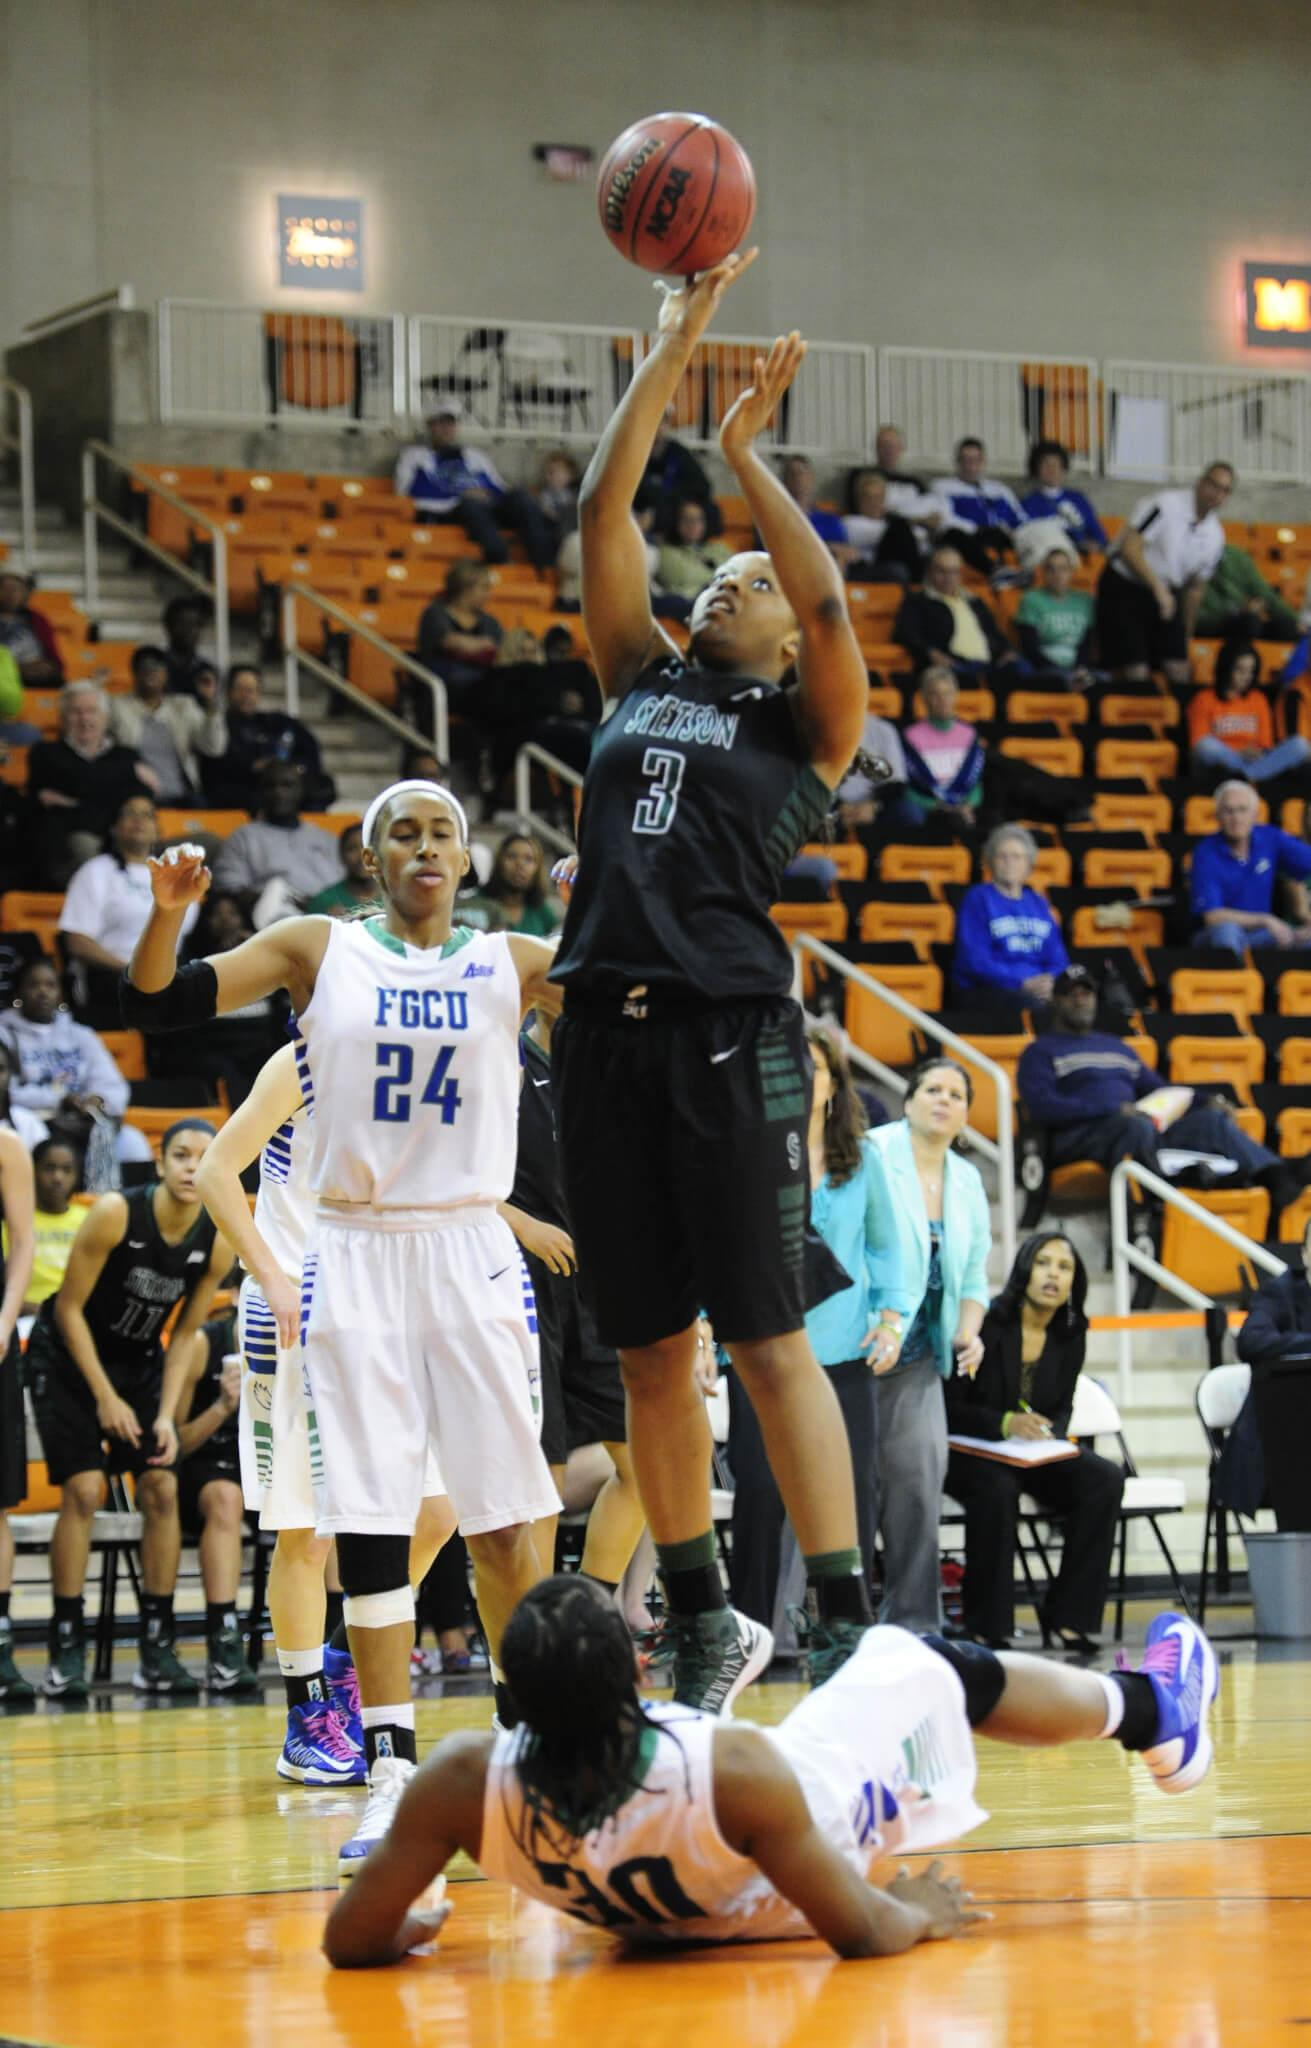 FGCU women play the waiting game after A-Sun loss to Stetson